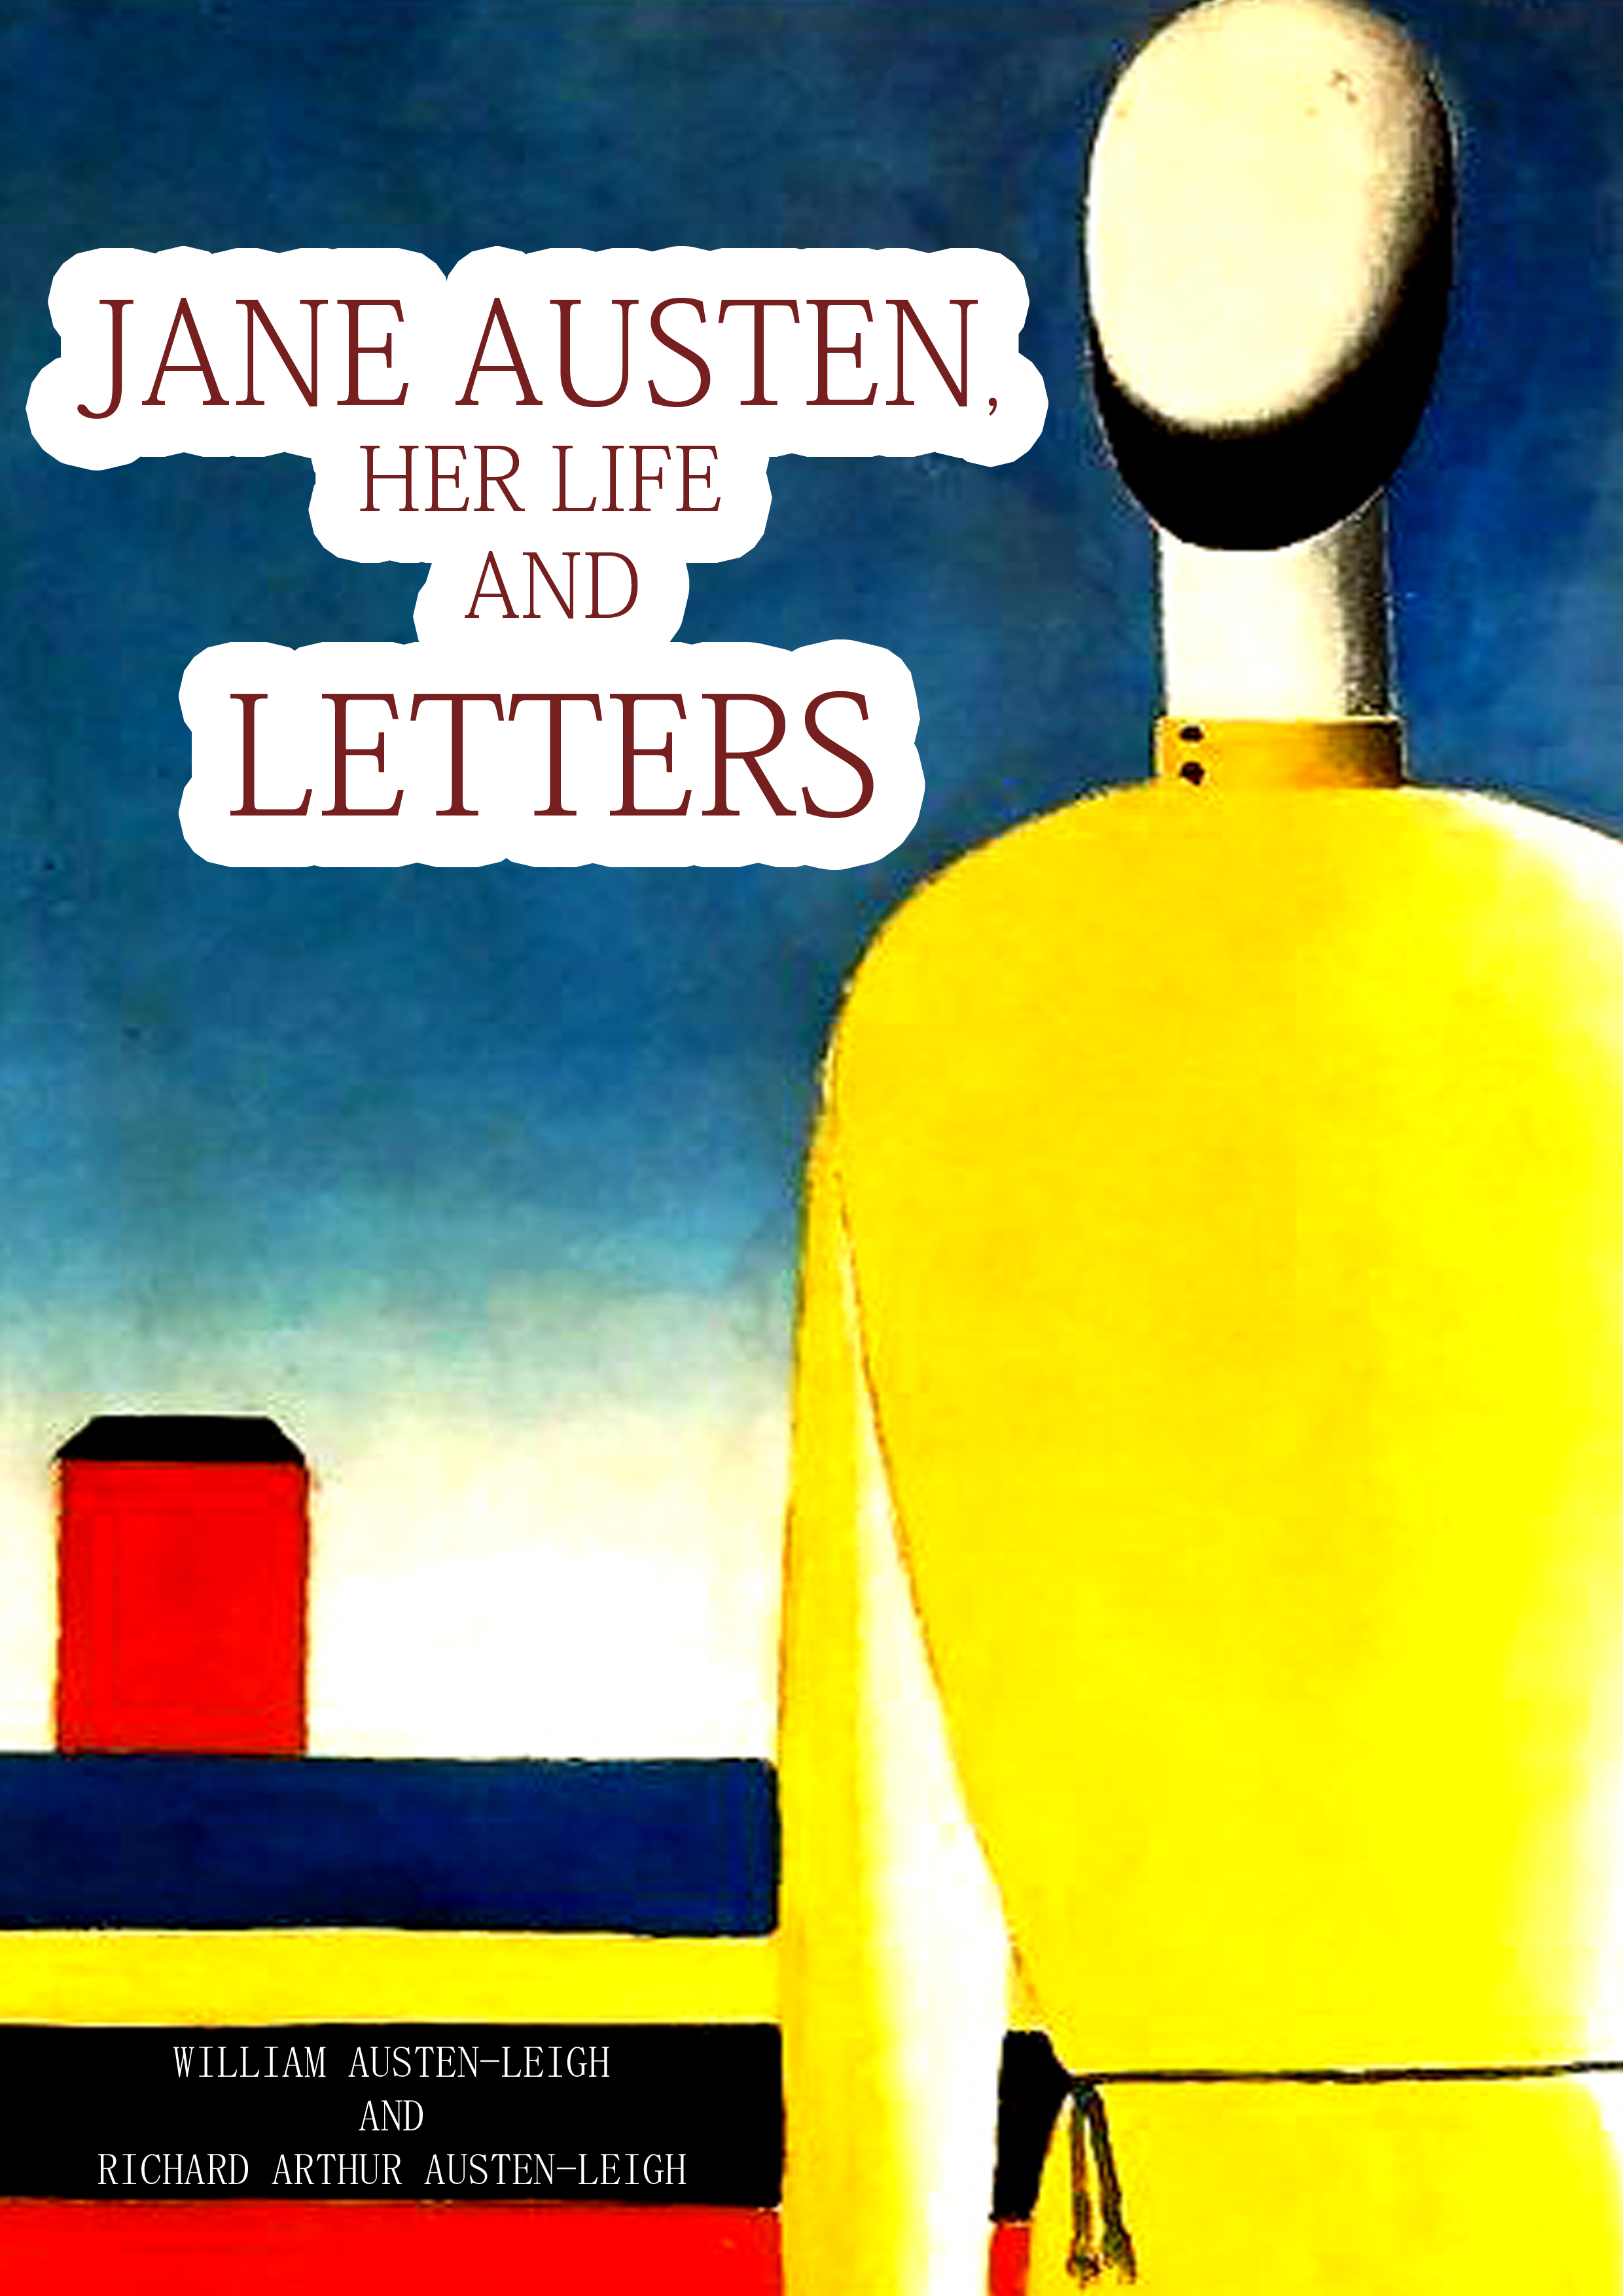 Jane Austen, Her Life And Letters By: William Austen-Leigh And Richard Arthur Austen-Leigh